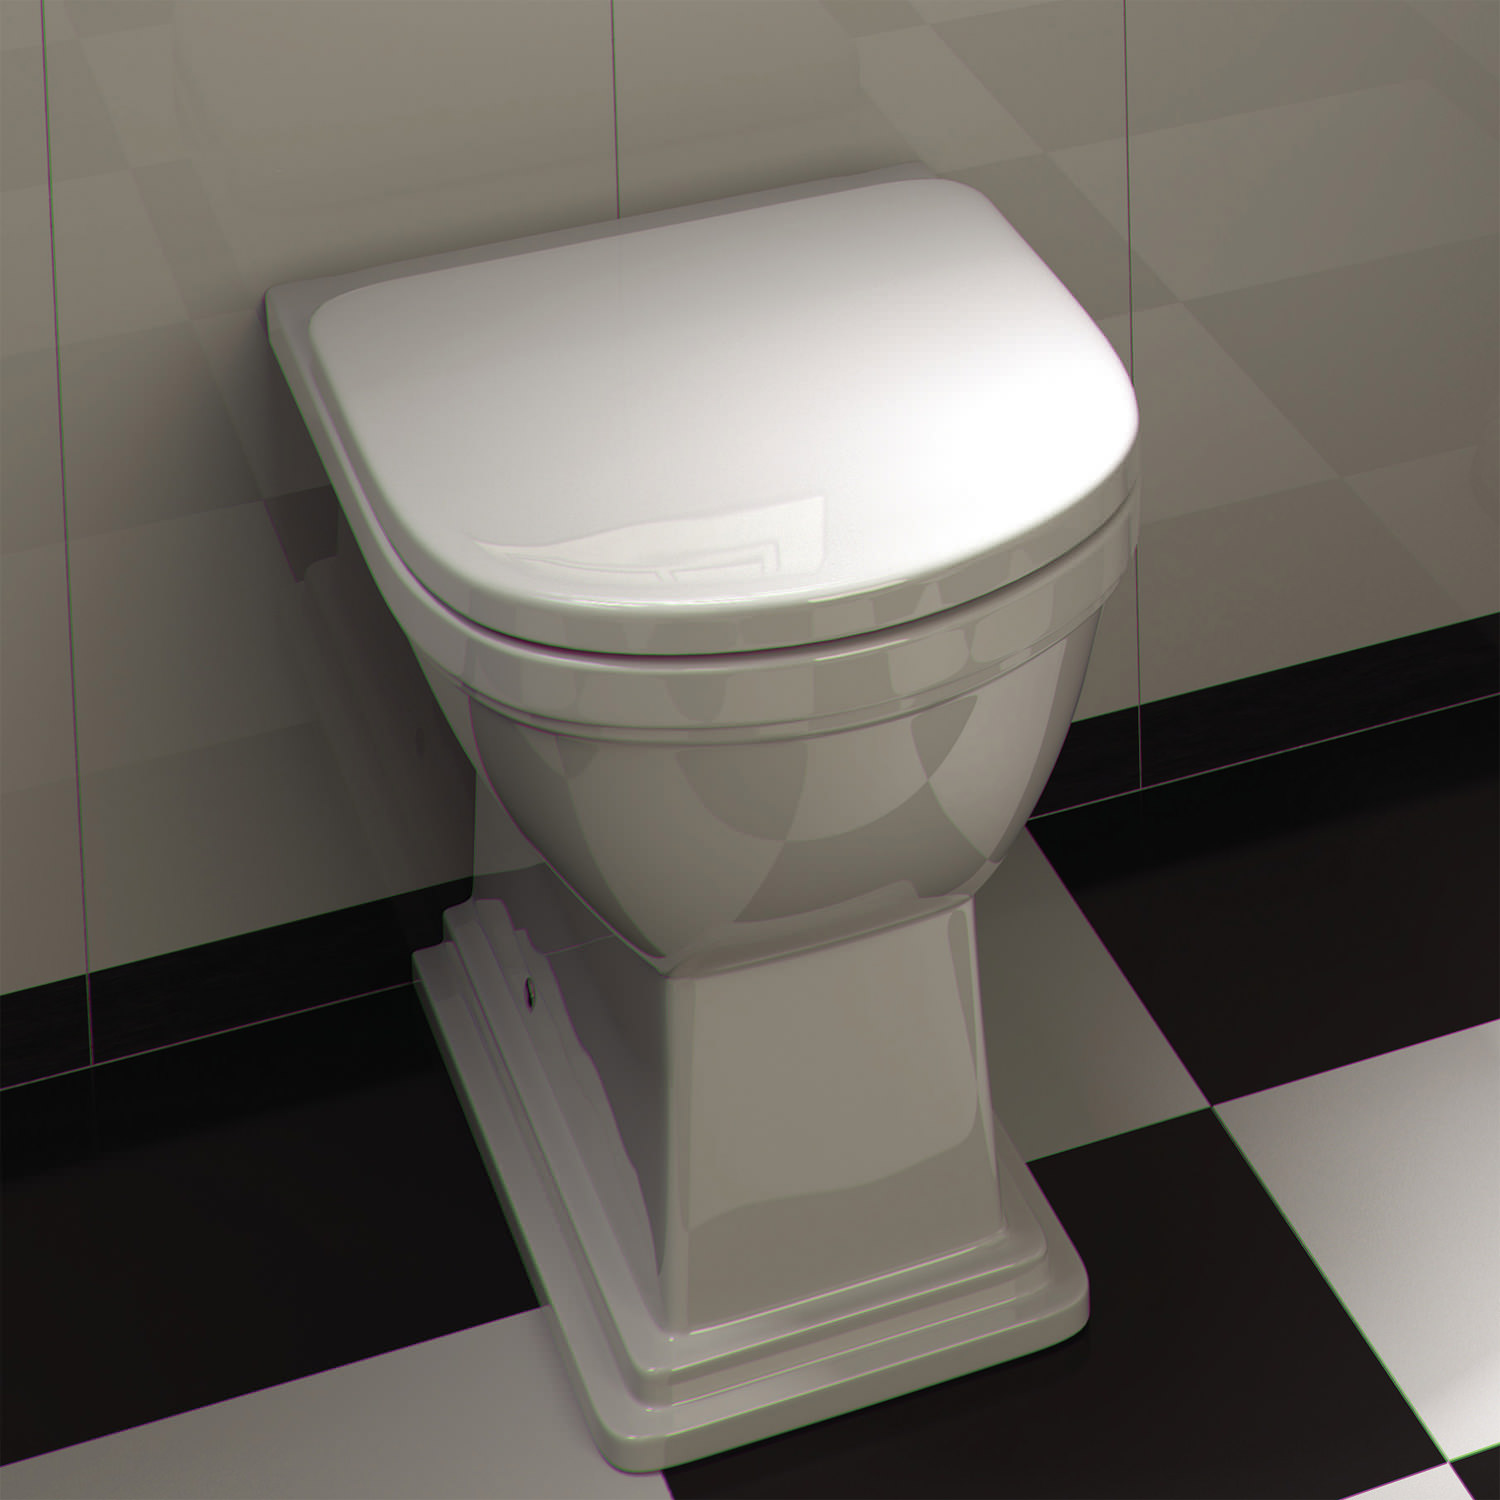 Rak empire back to wall wc pan with standard seat 540mm Empire bathrooms